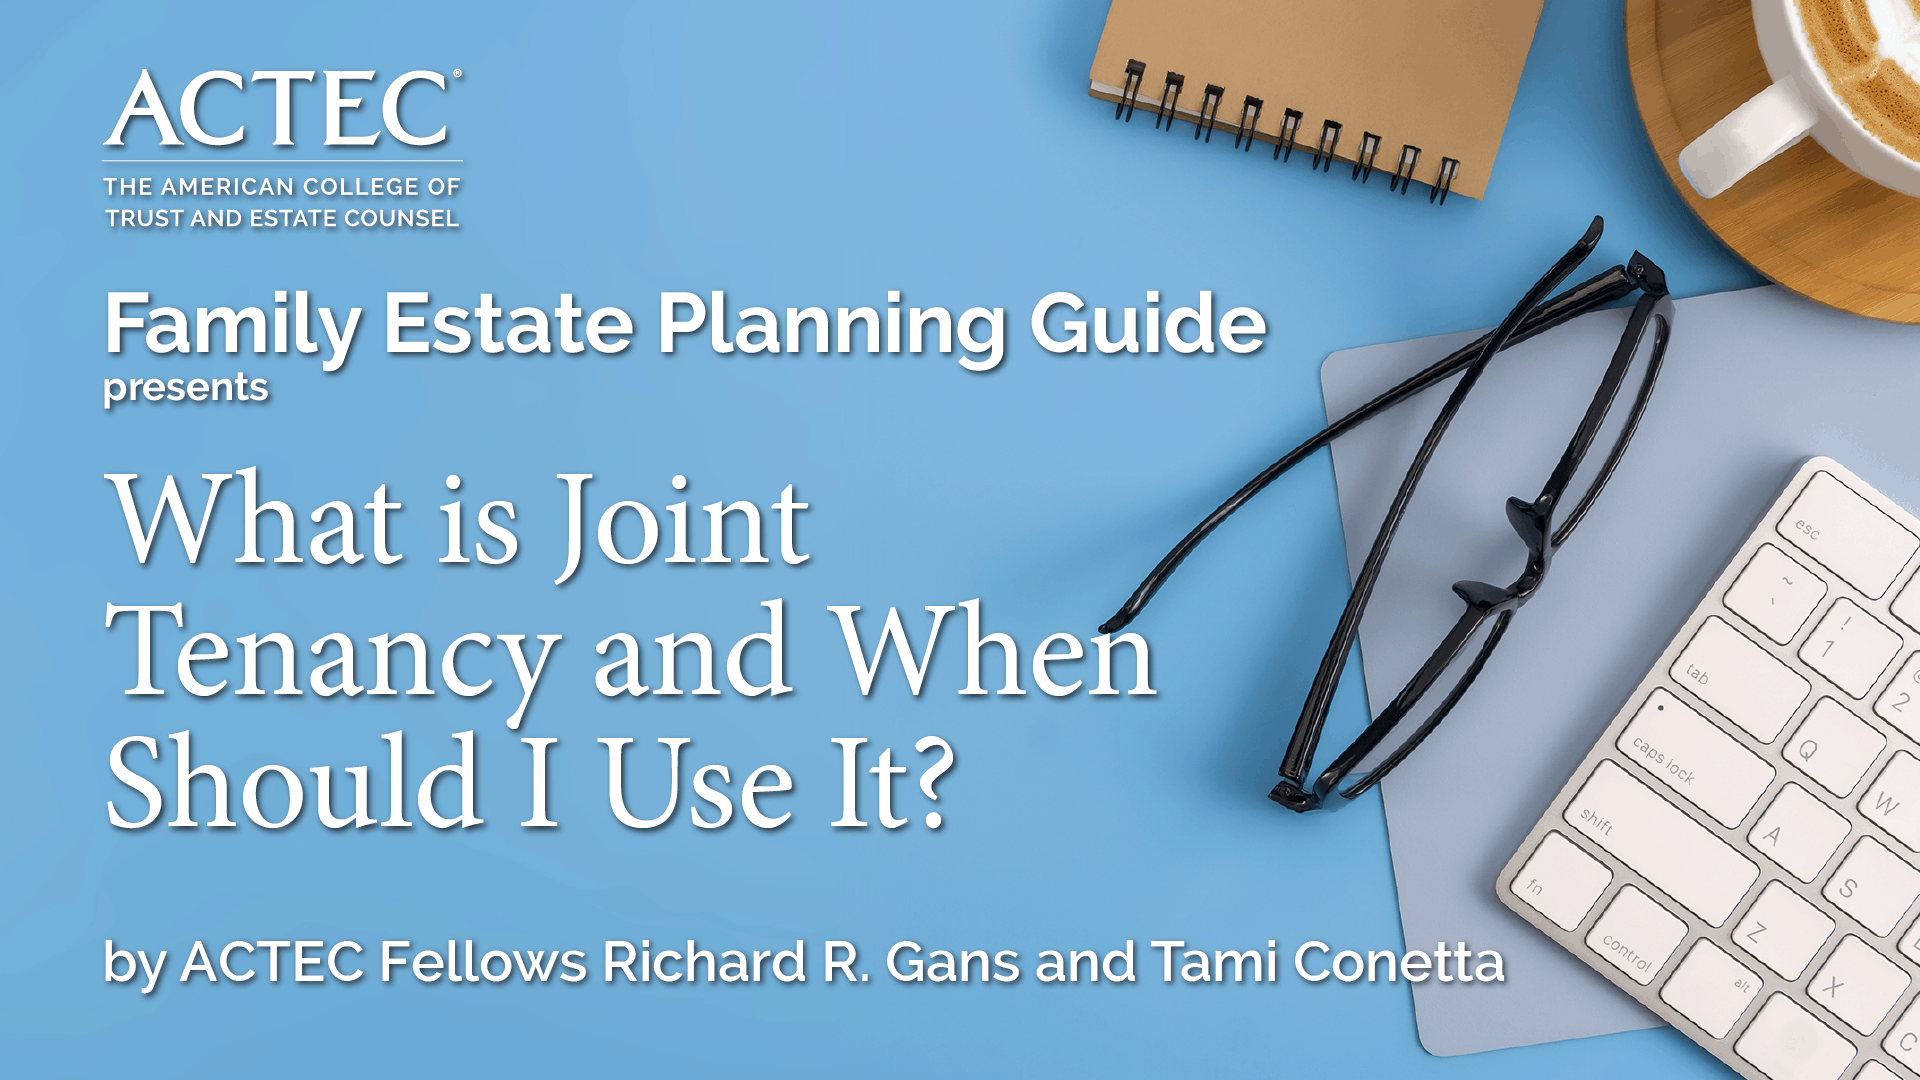 What is Joint Tenancy and When Should I Use It?